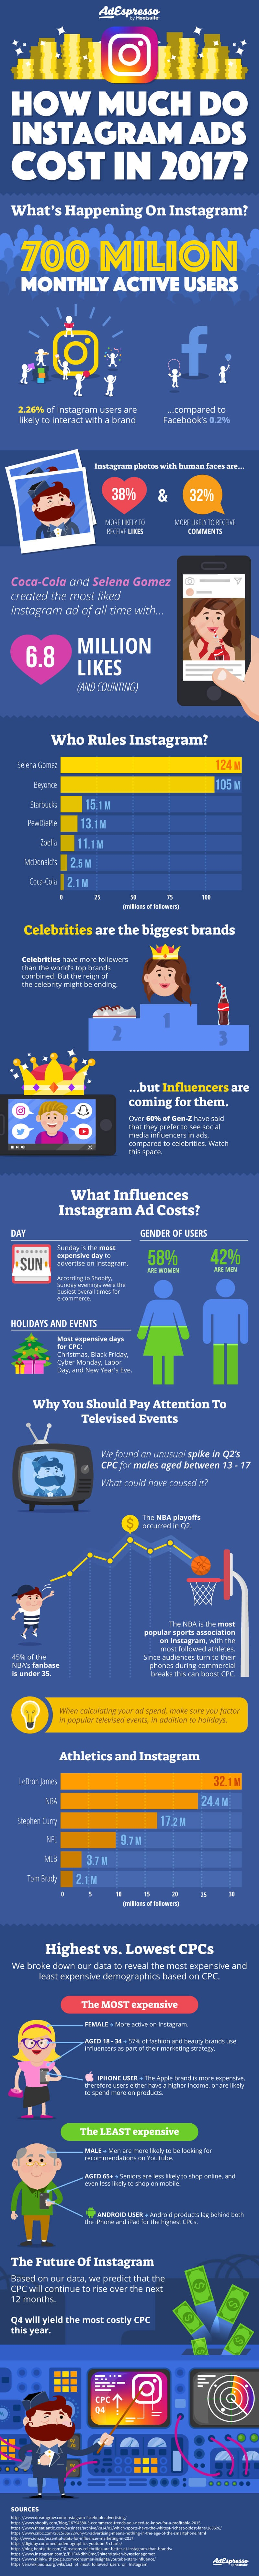 How Much Do Instagram Ads Cost in 2017